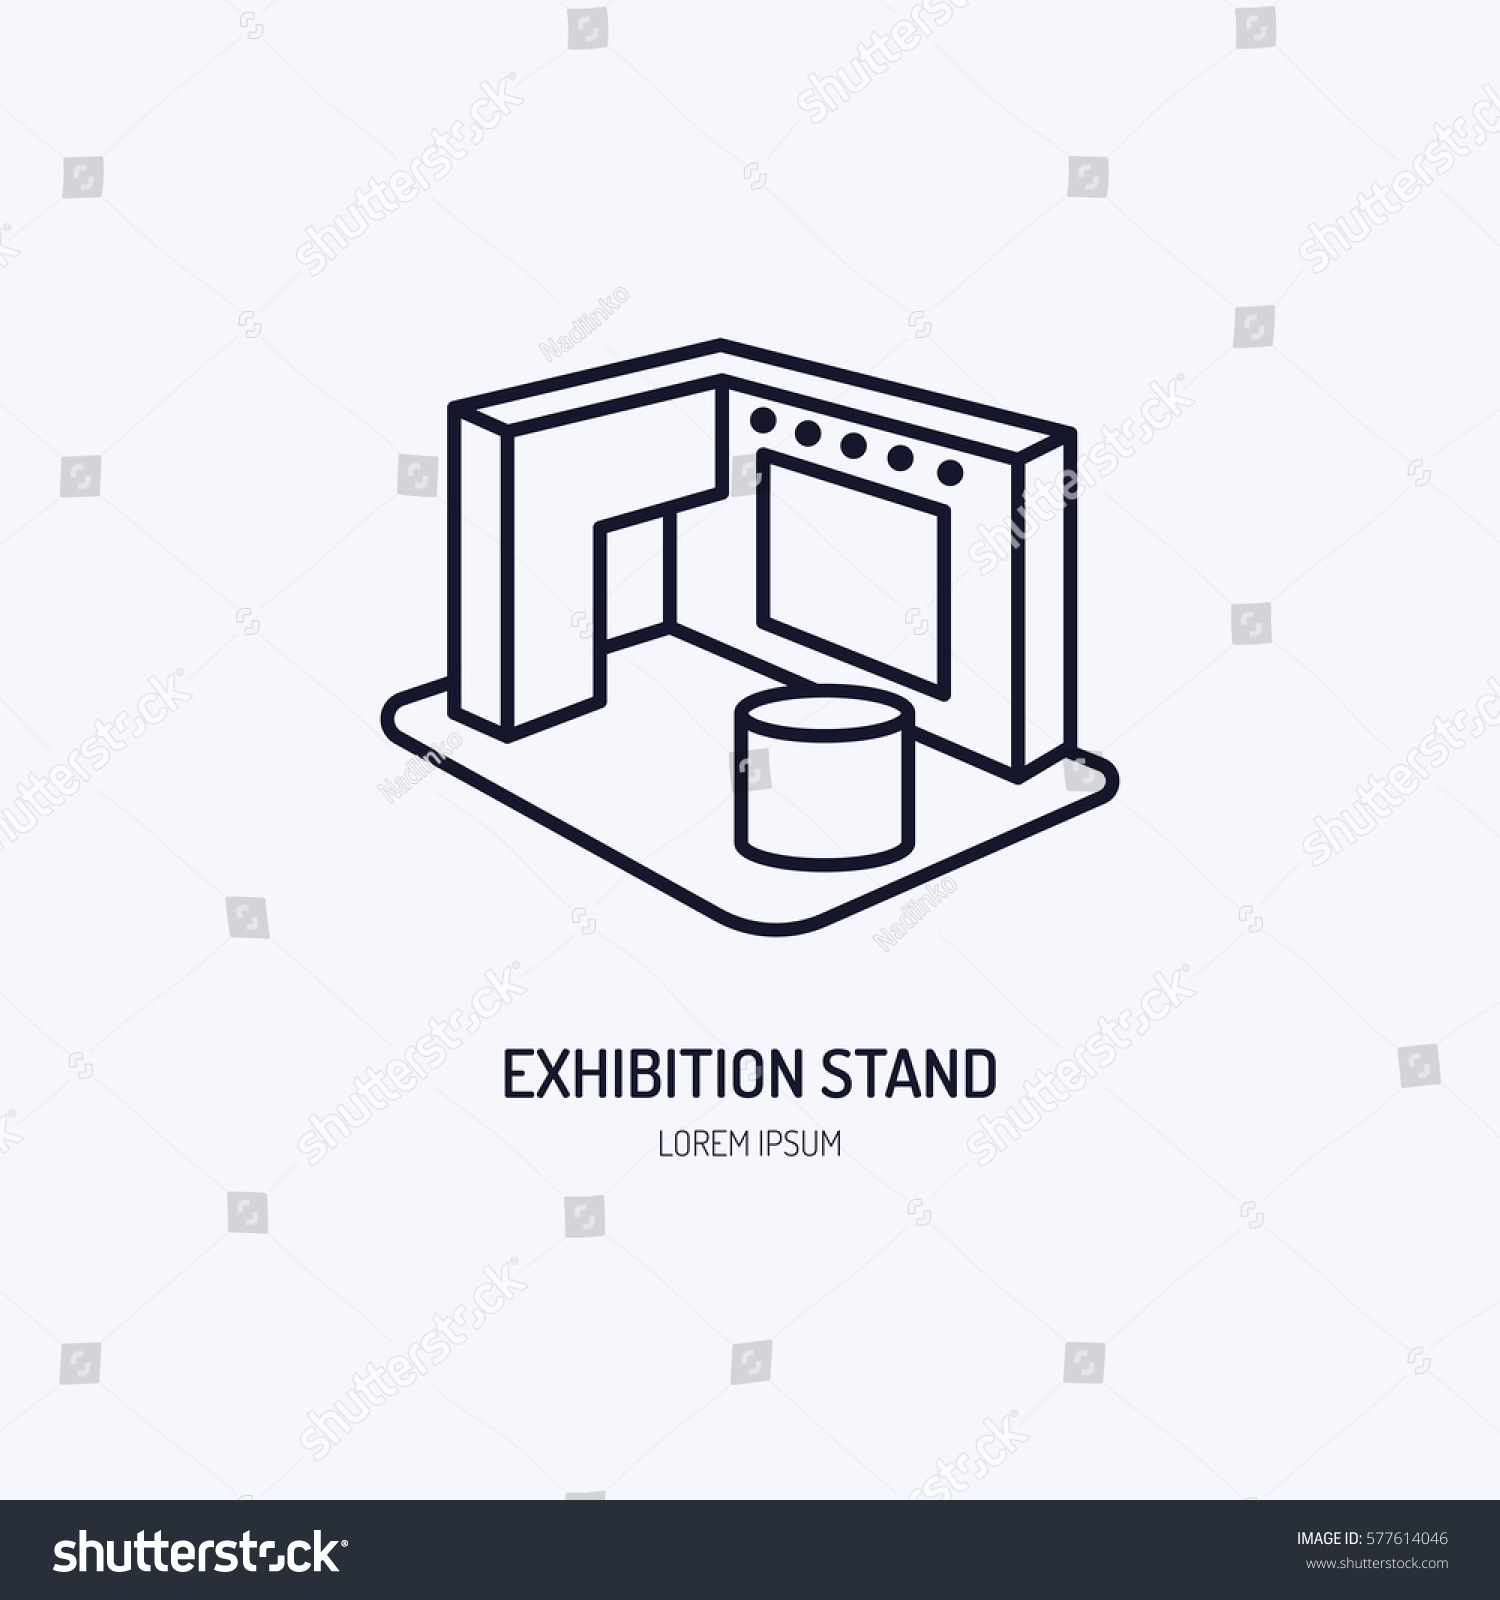 Sungard Exhibition Stand Vector : Exhibition banner stand vector line icon stock